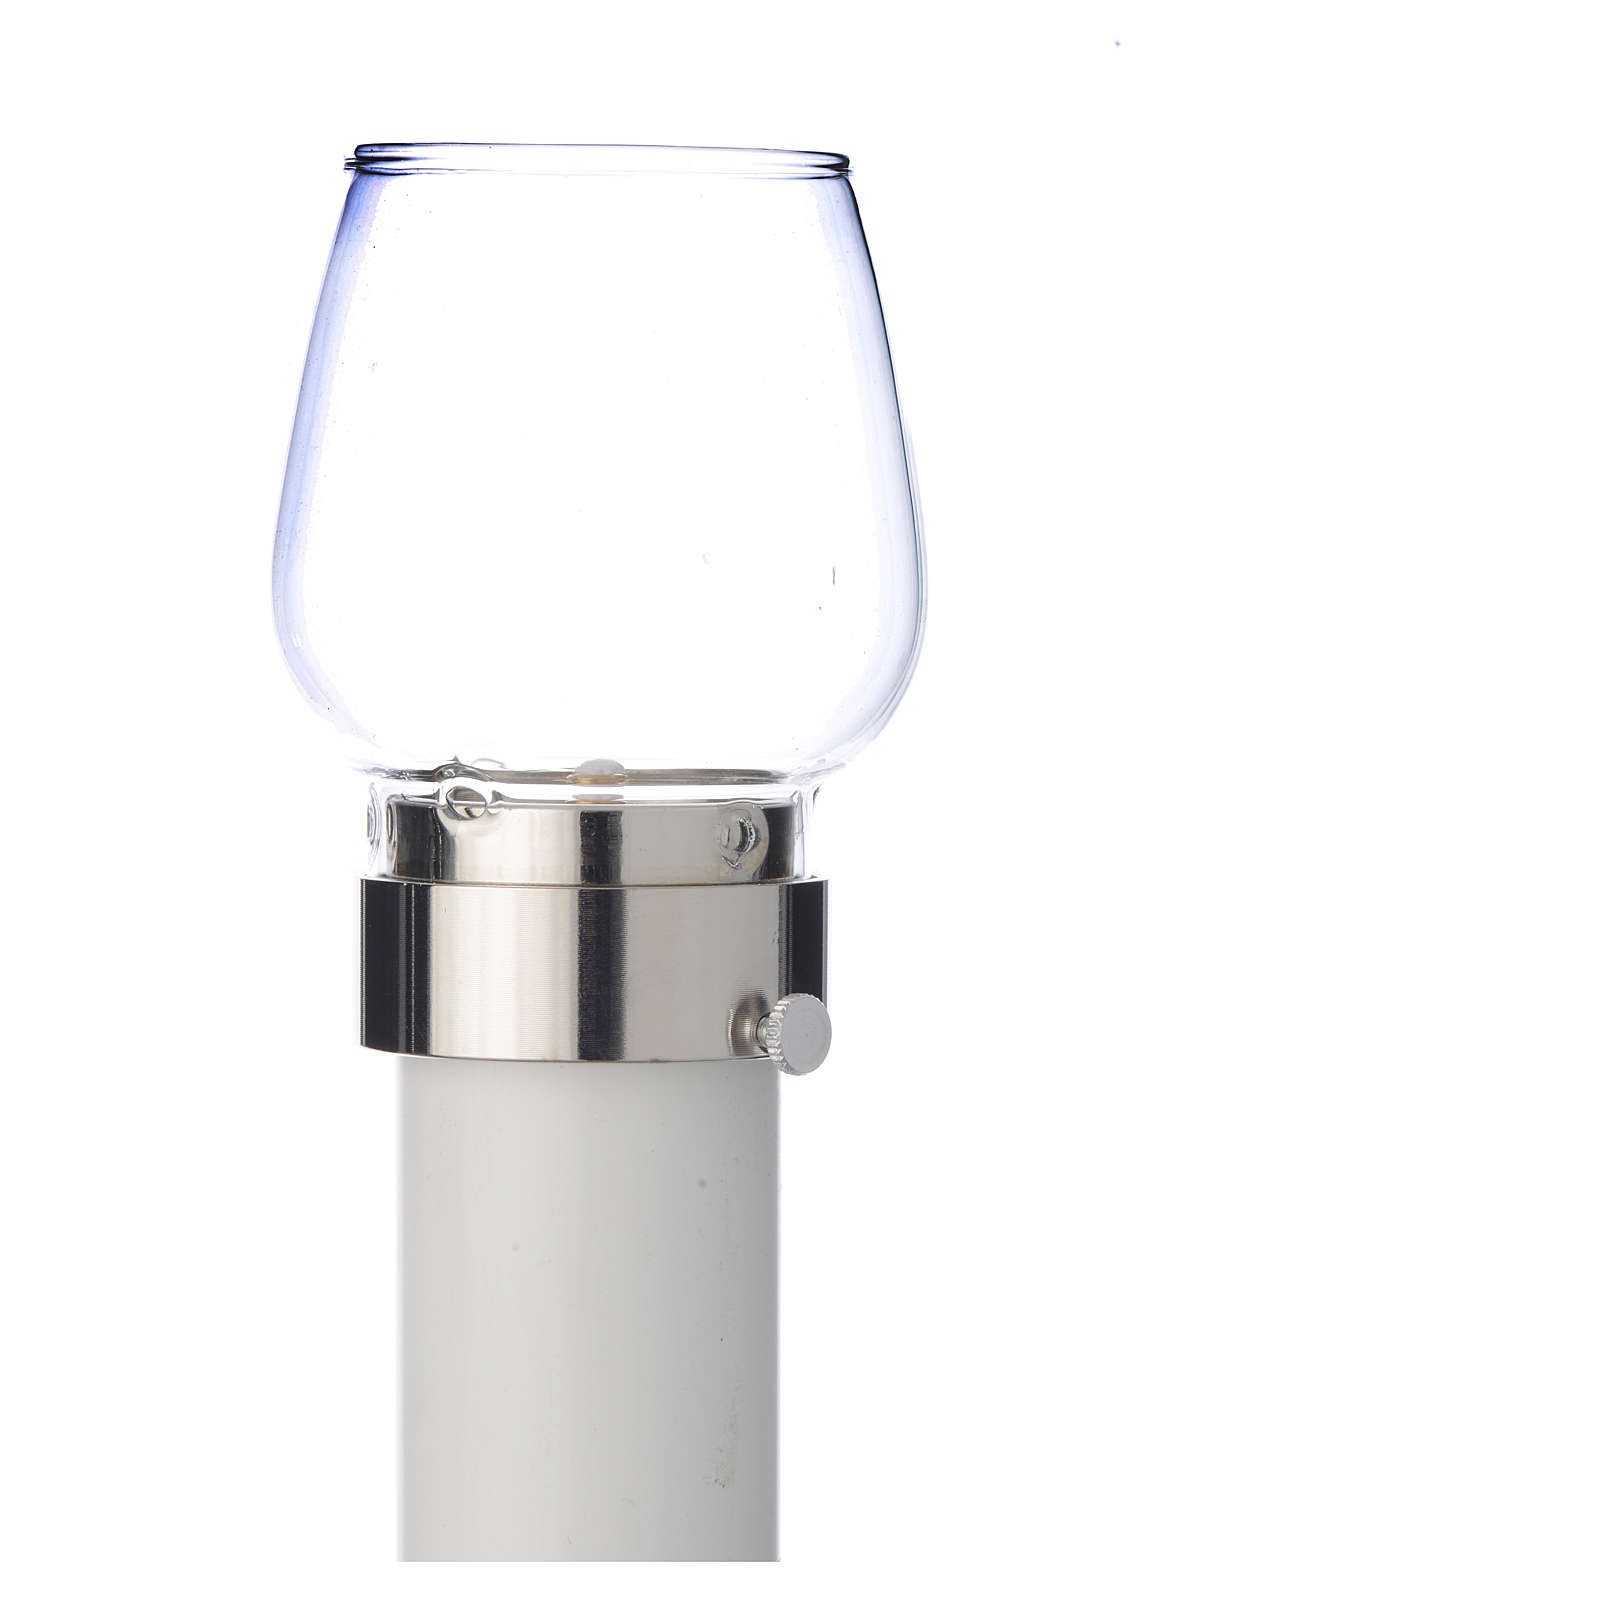 Wind-proof Candle Follower, 30 cm tall with silver base, 5 cm diameter 3